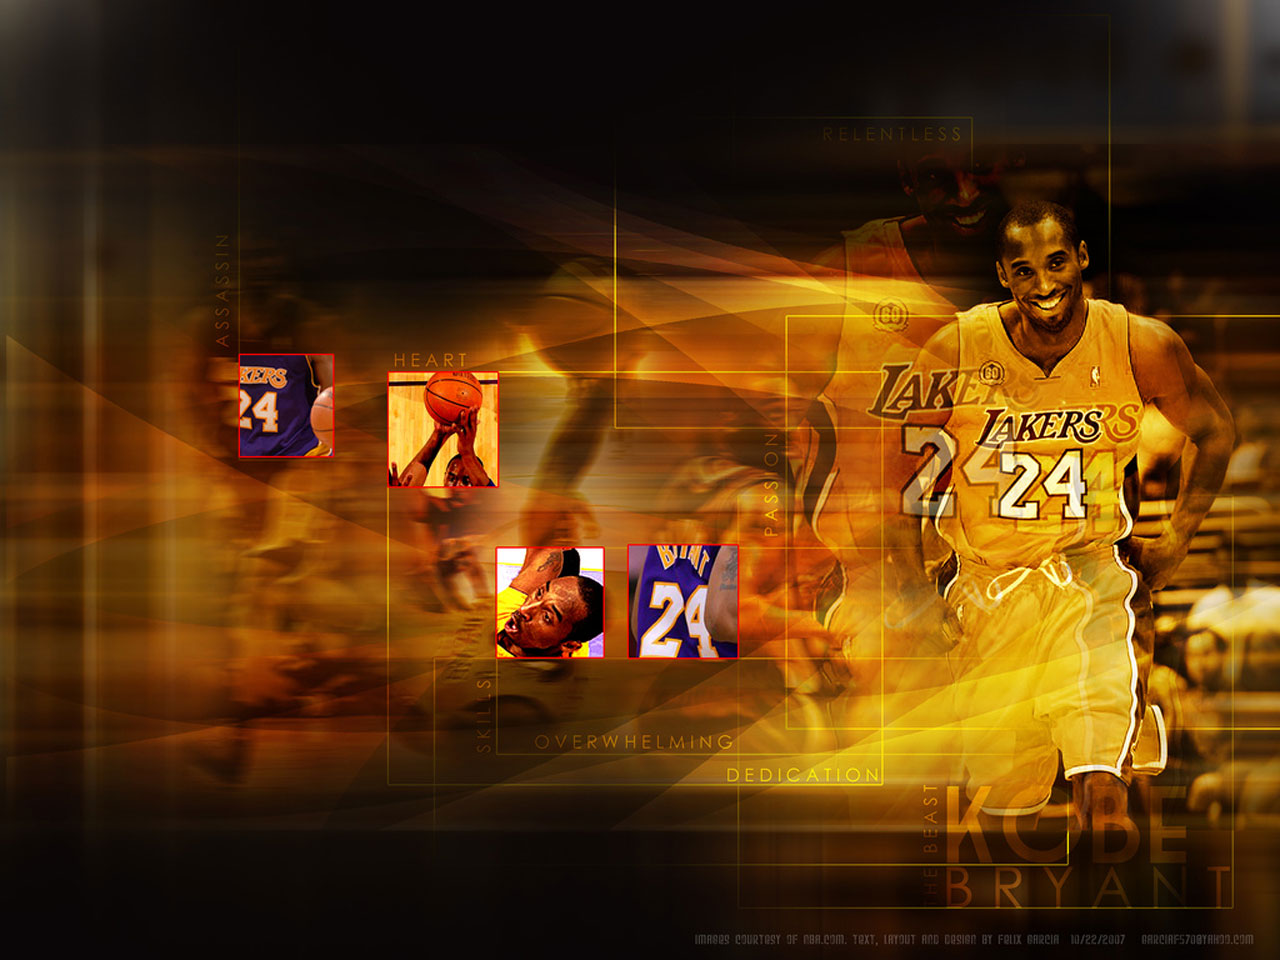 Nba Kobe Bryant Wallpaper